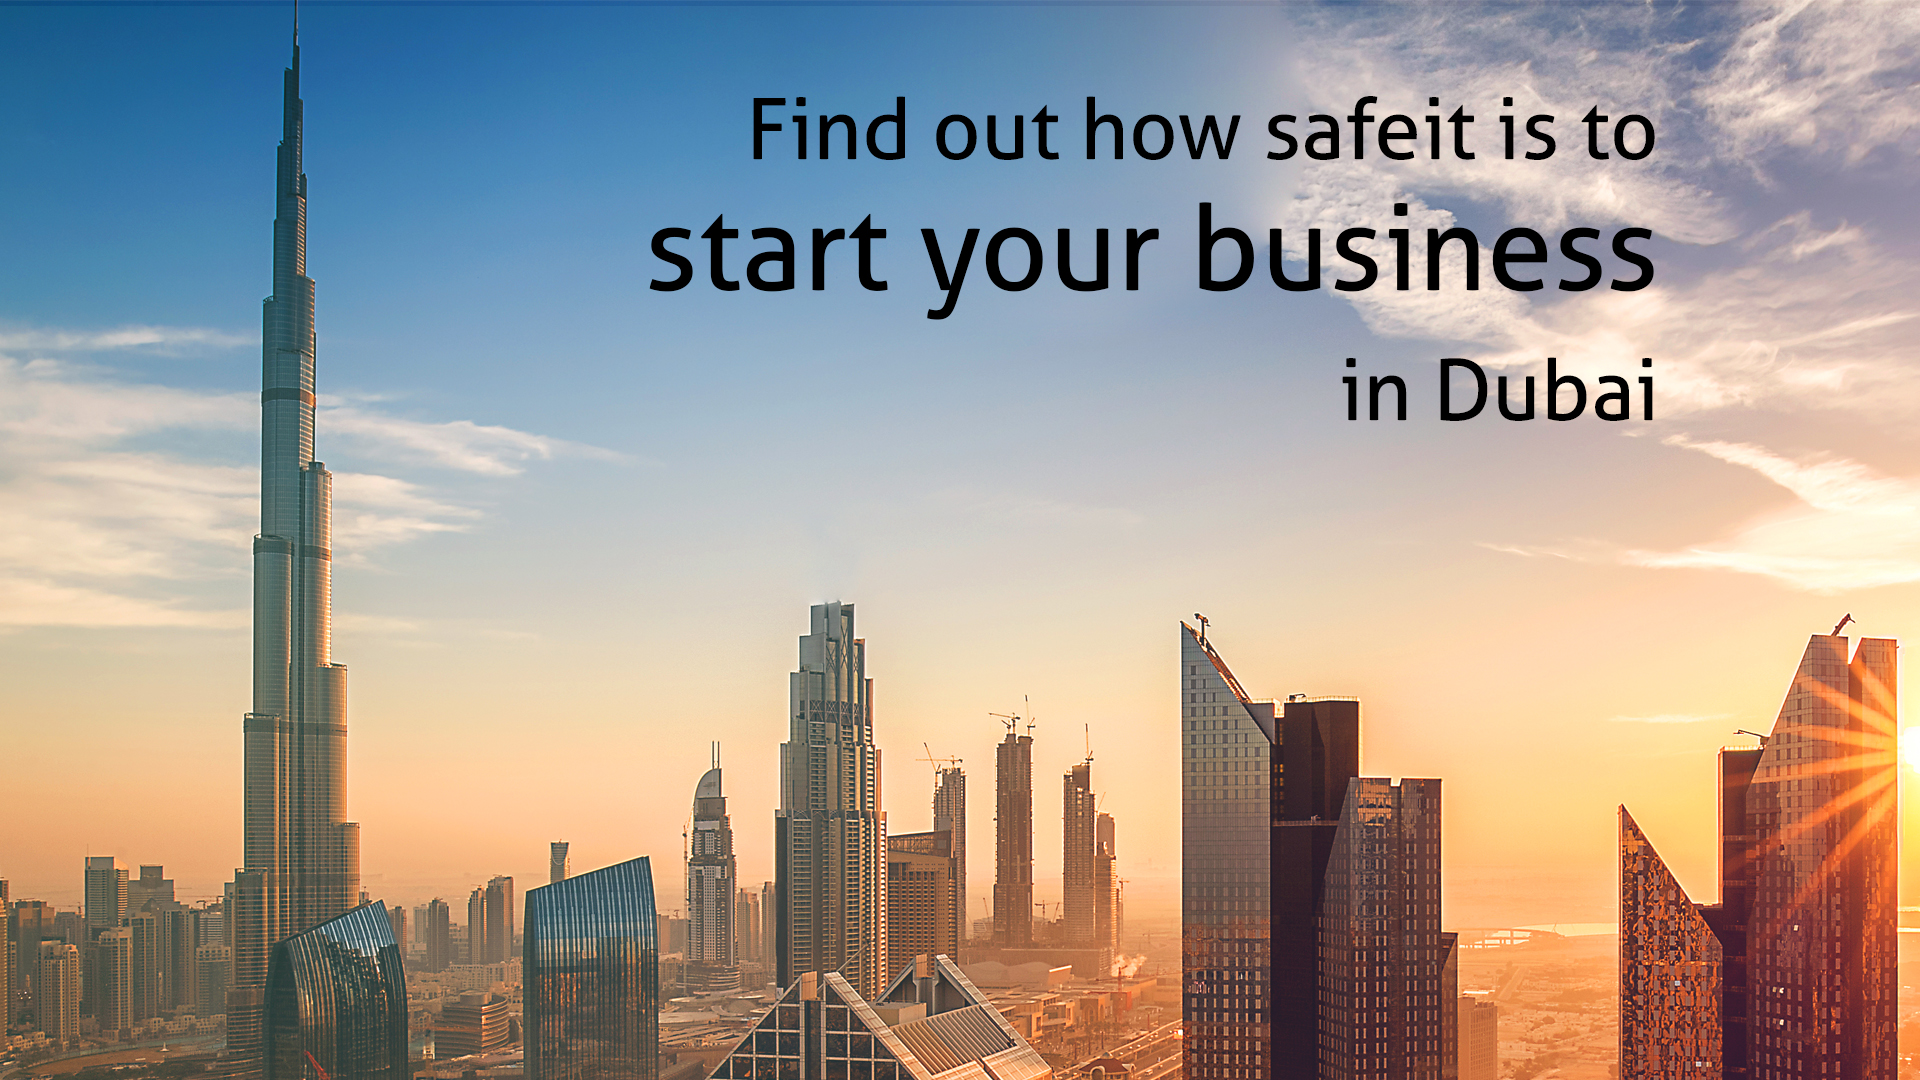 Find out how safeit is to start your business in Dubai